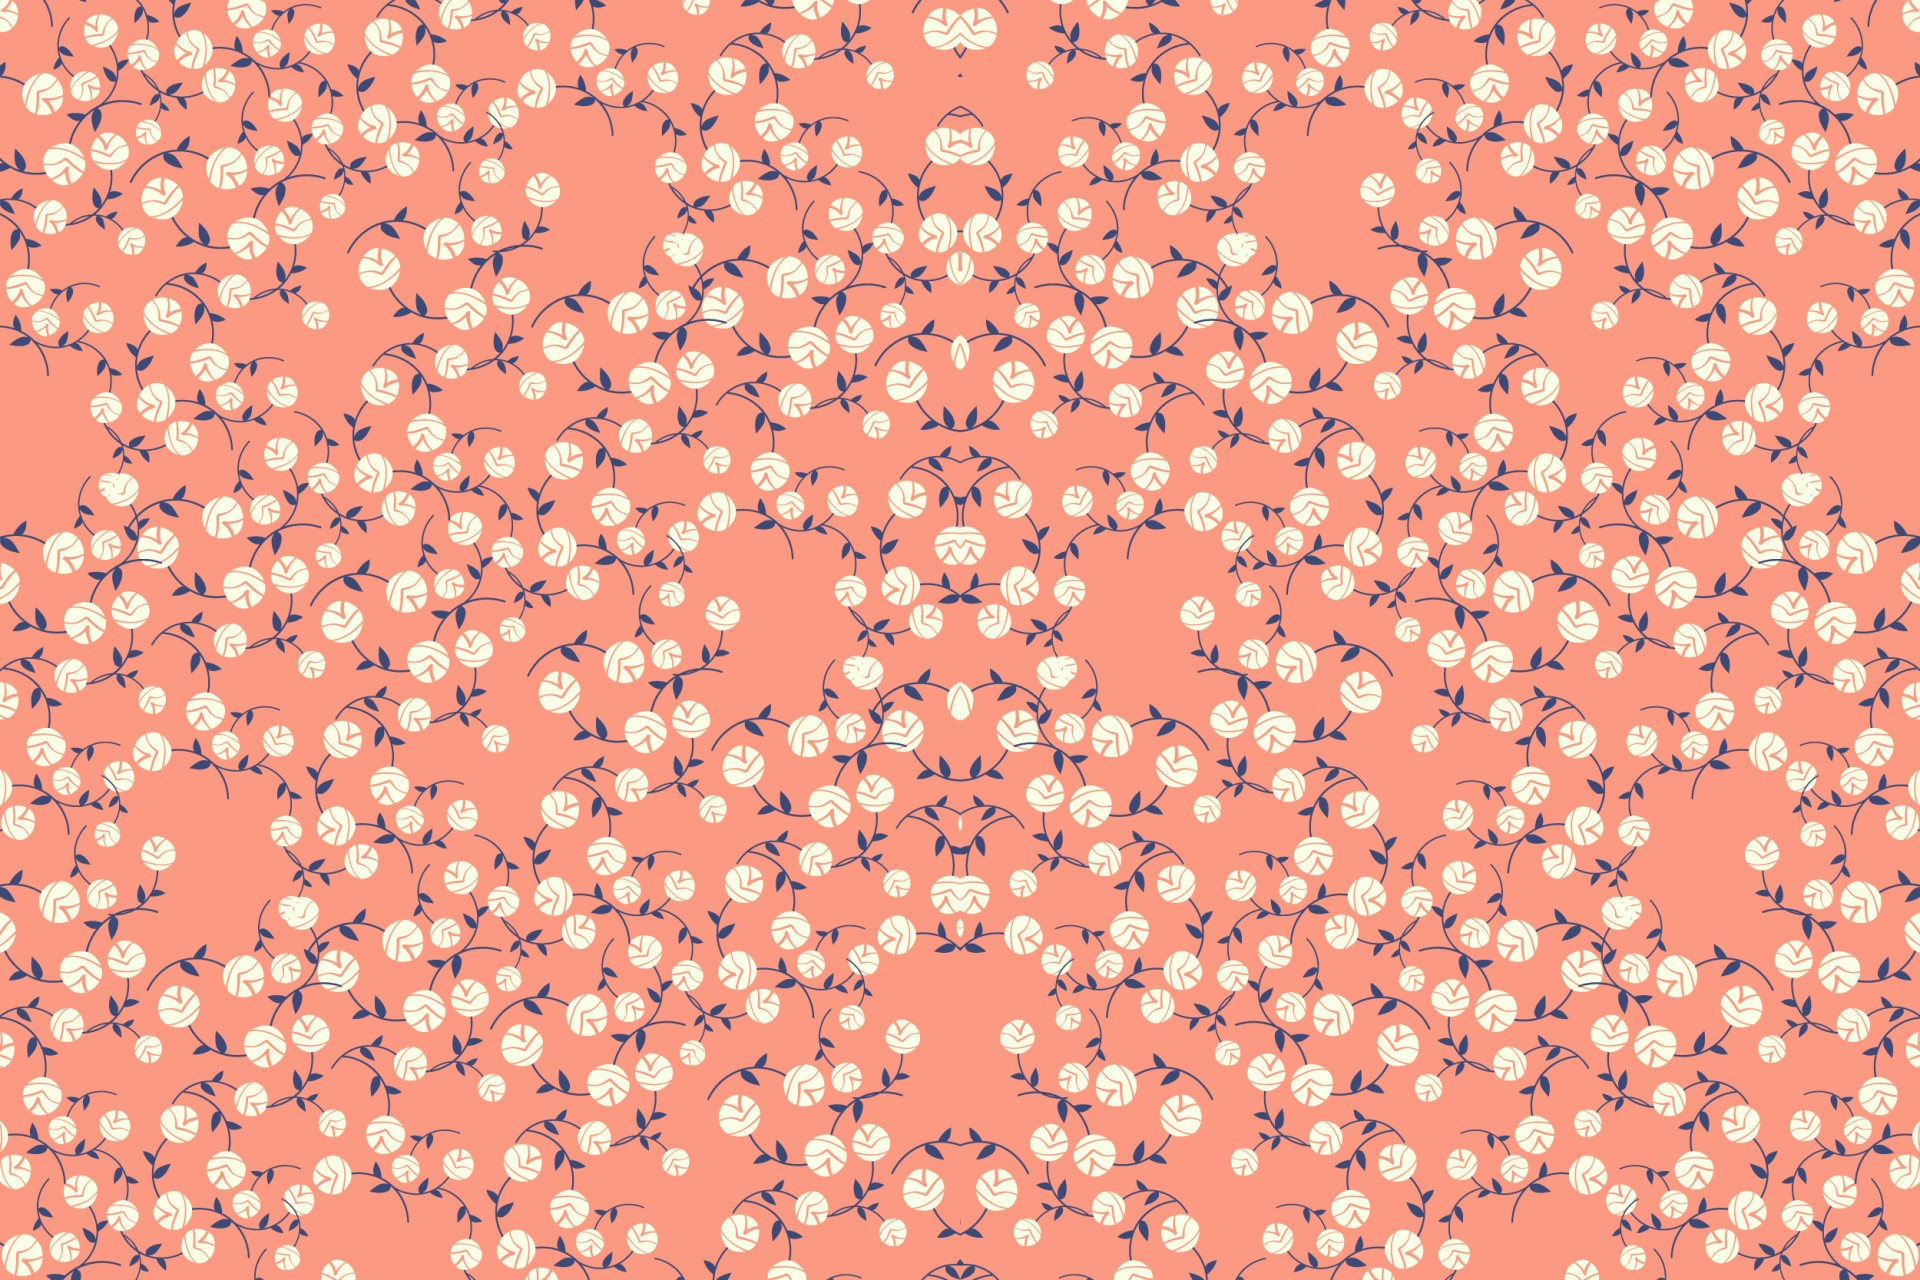 small-flowers-pattern-1437723178tjv